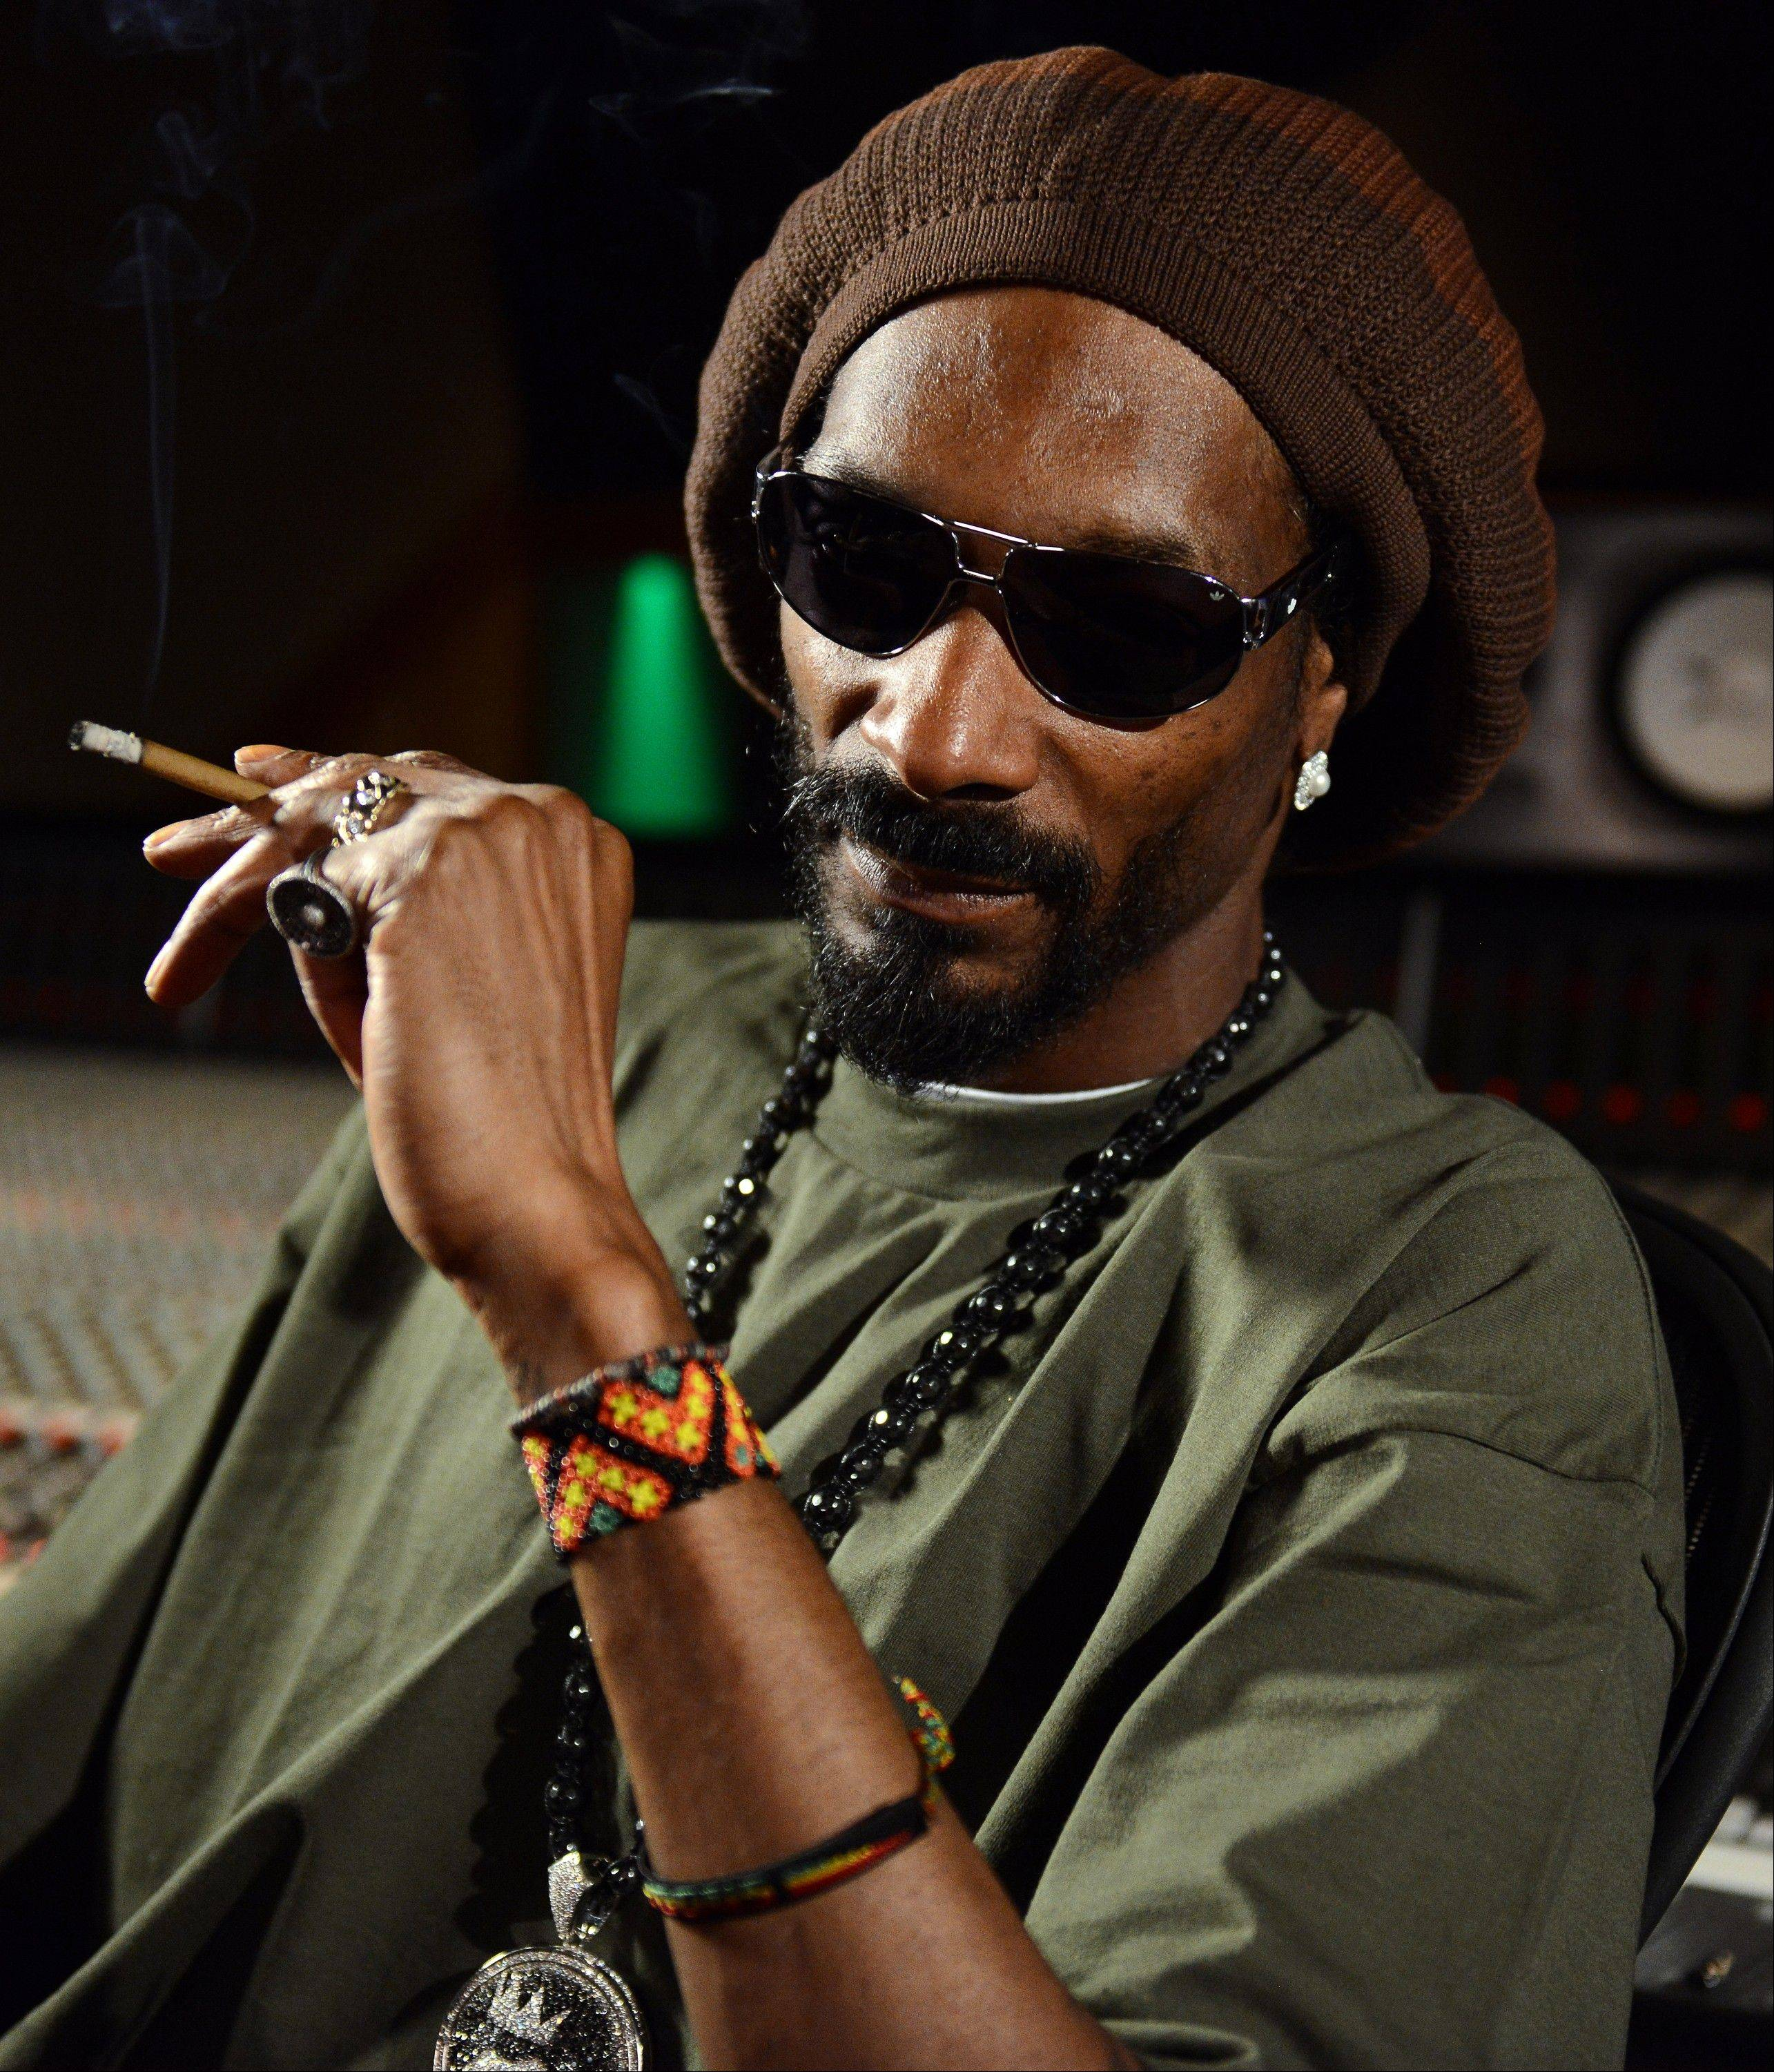 While promoting an accompanying documentary that tracks his trip to Jamaica and exploration of the Rastafarian culture and religion, Snoop says Lion is less a lifestyle transformation than a personal evolution.